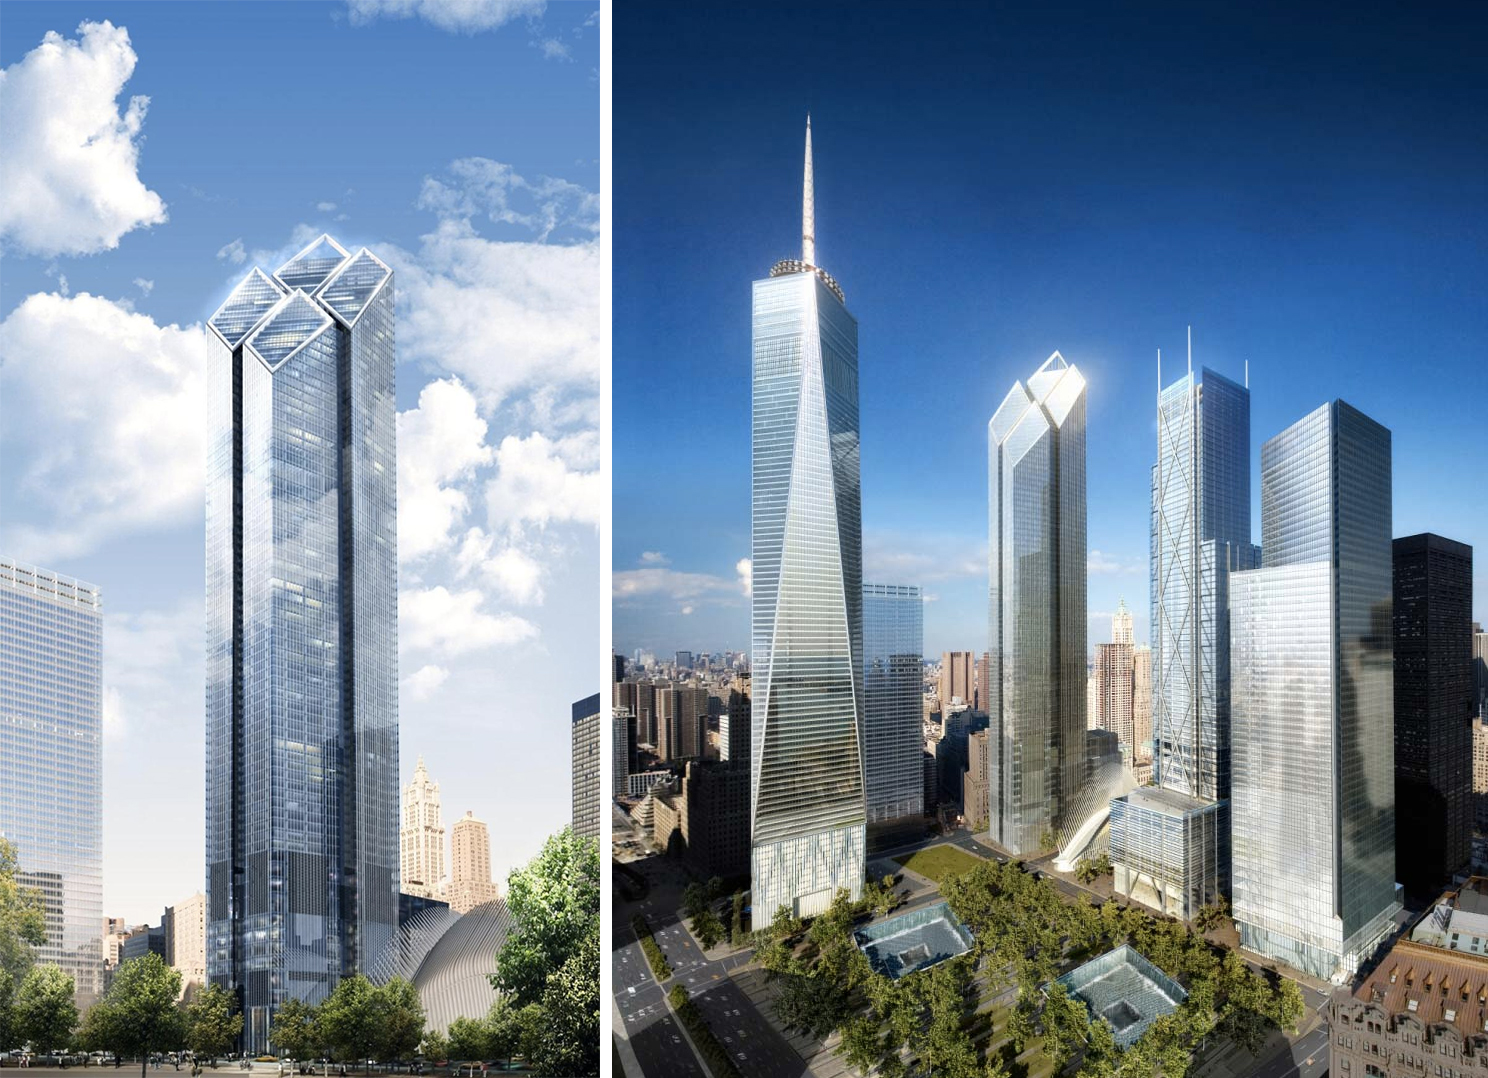 Norman foster 39 s 2 world trade center could get a jumpstart for 2 world trade center